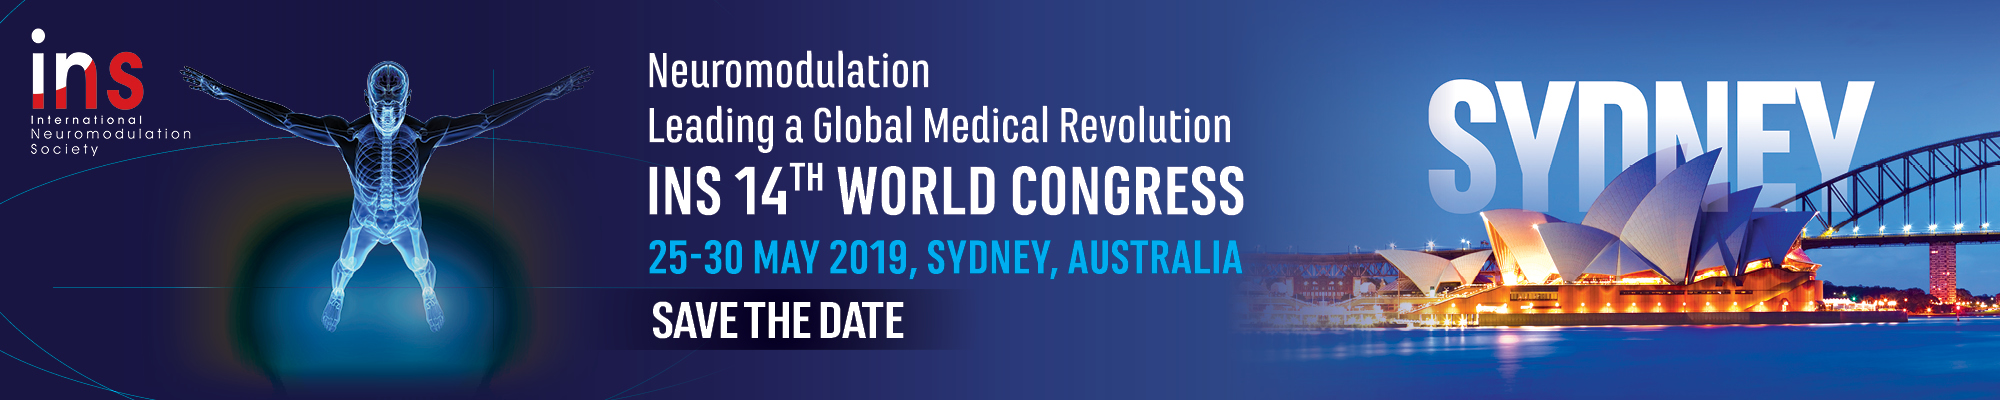 INS 14th World Congress Save the Date Banner